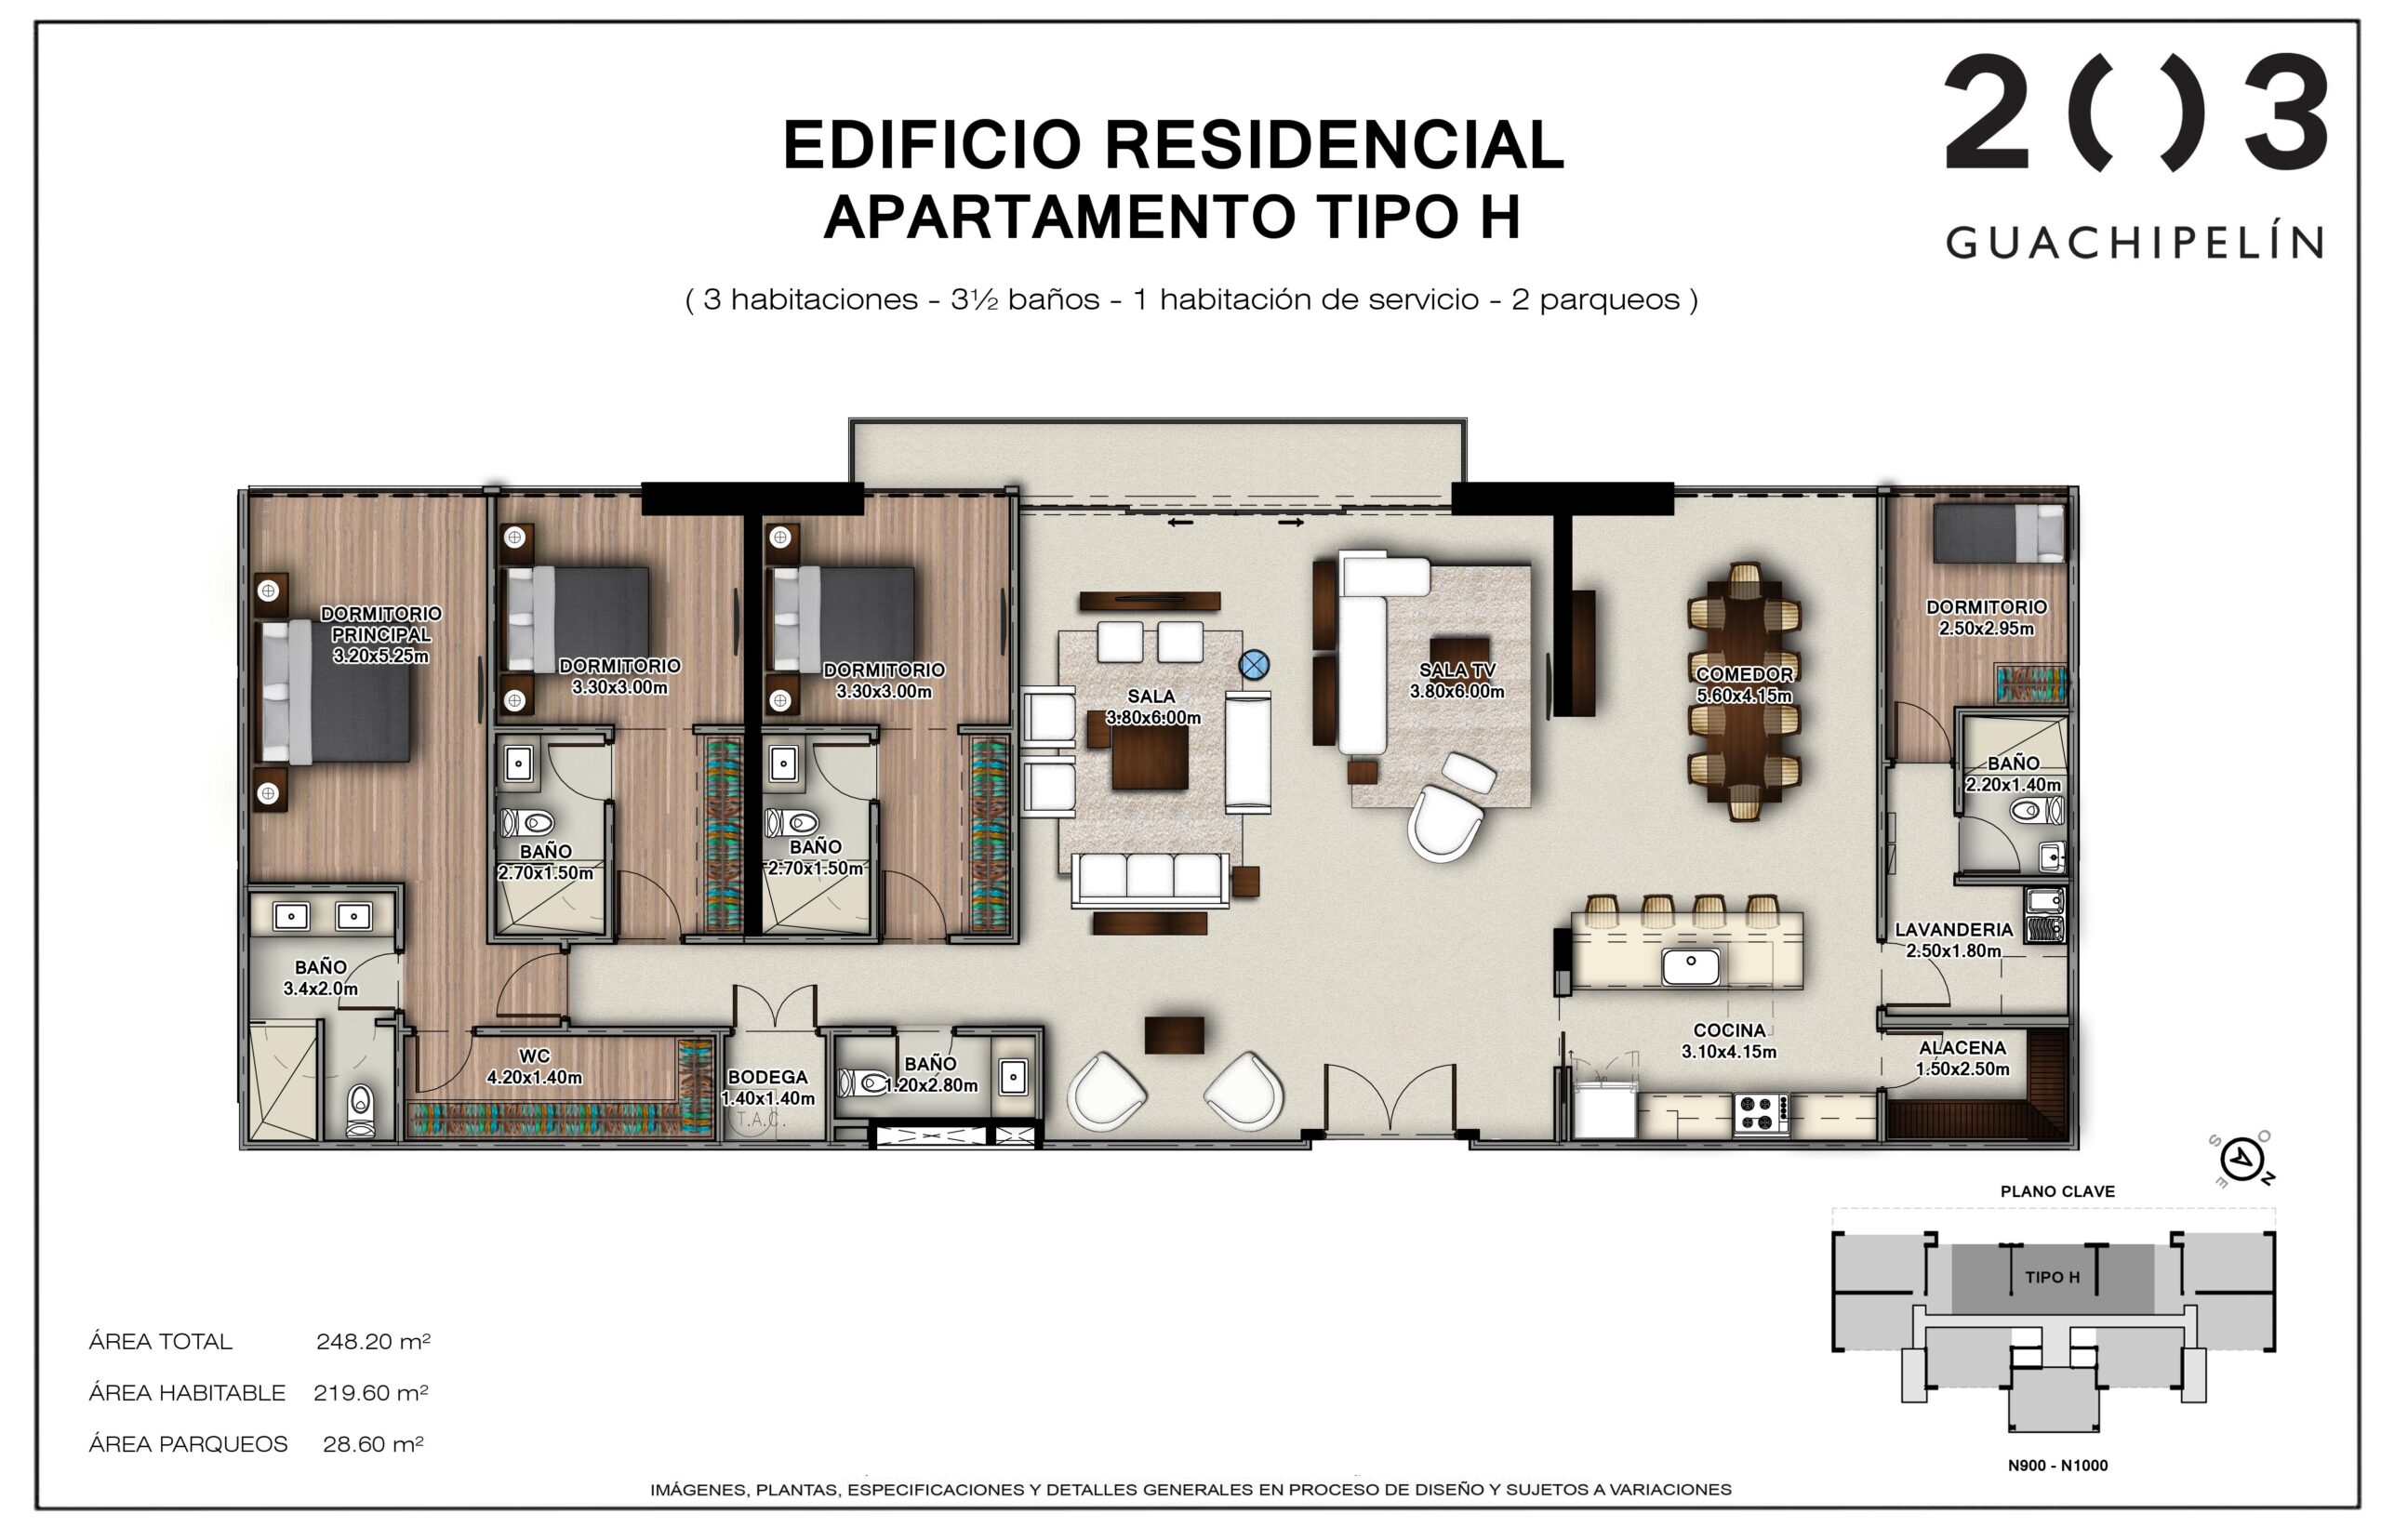 LAYOUT PENTHOUSE H